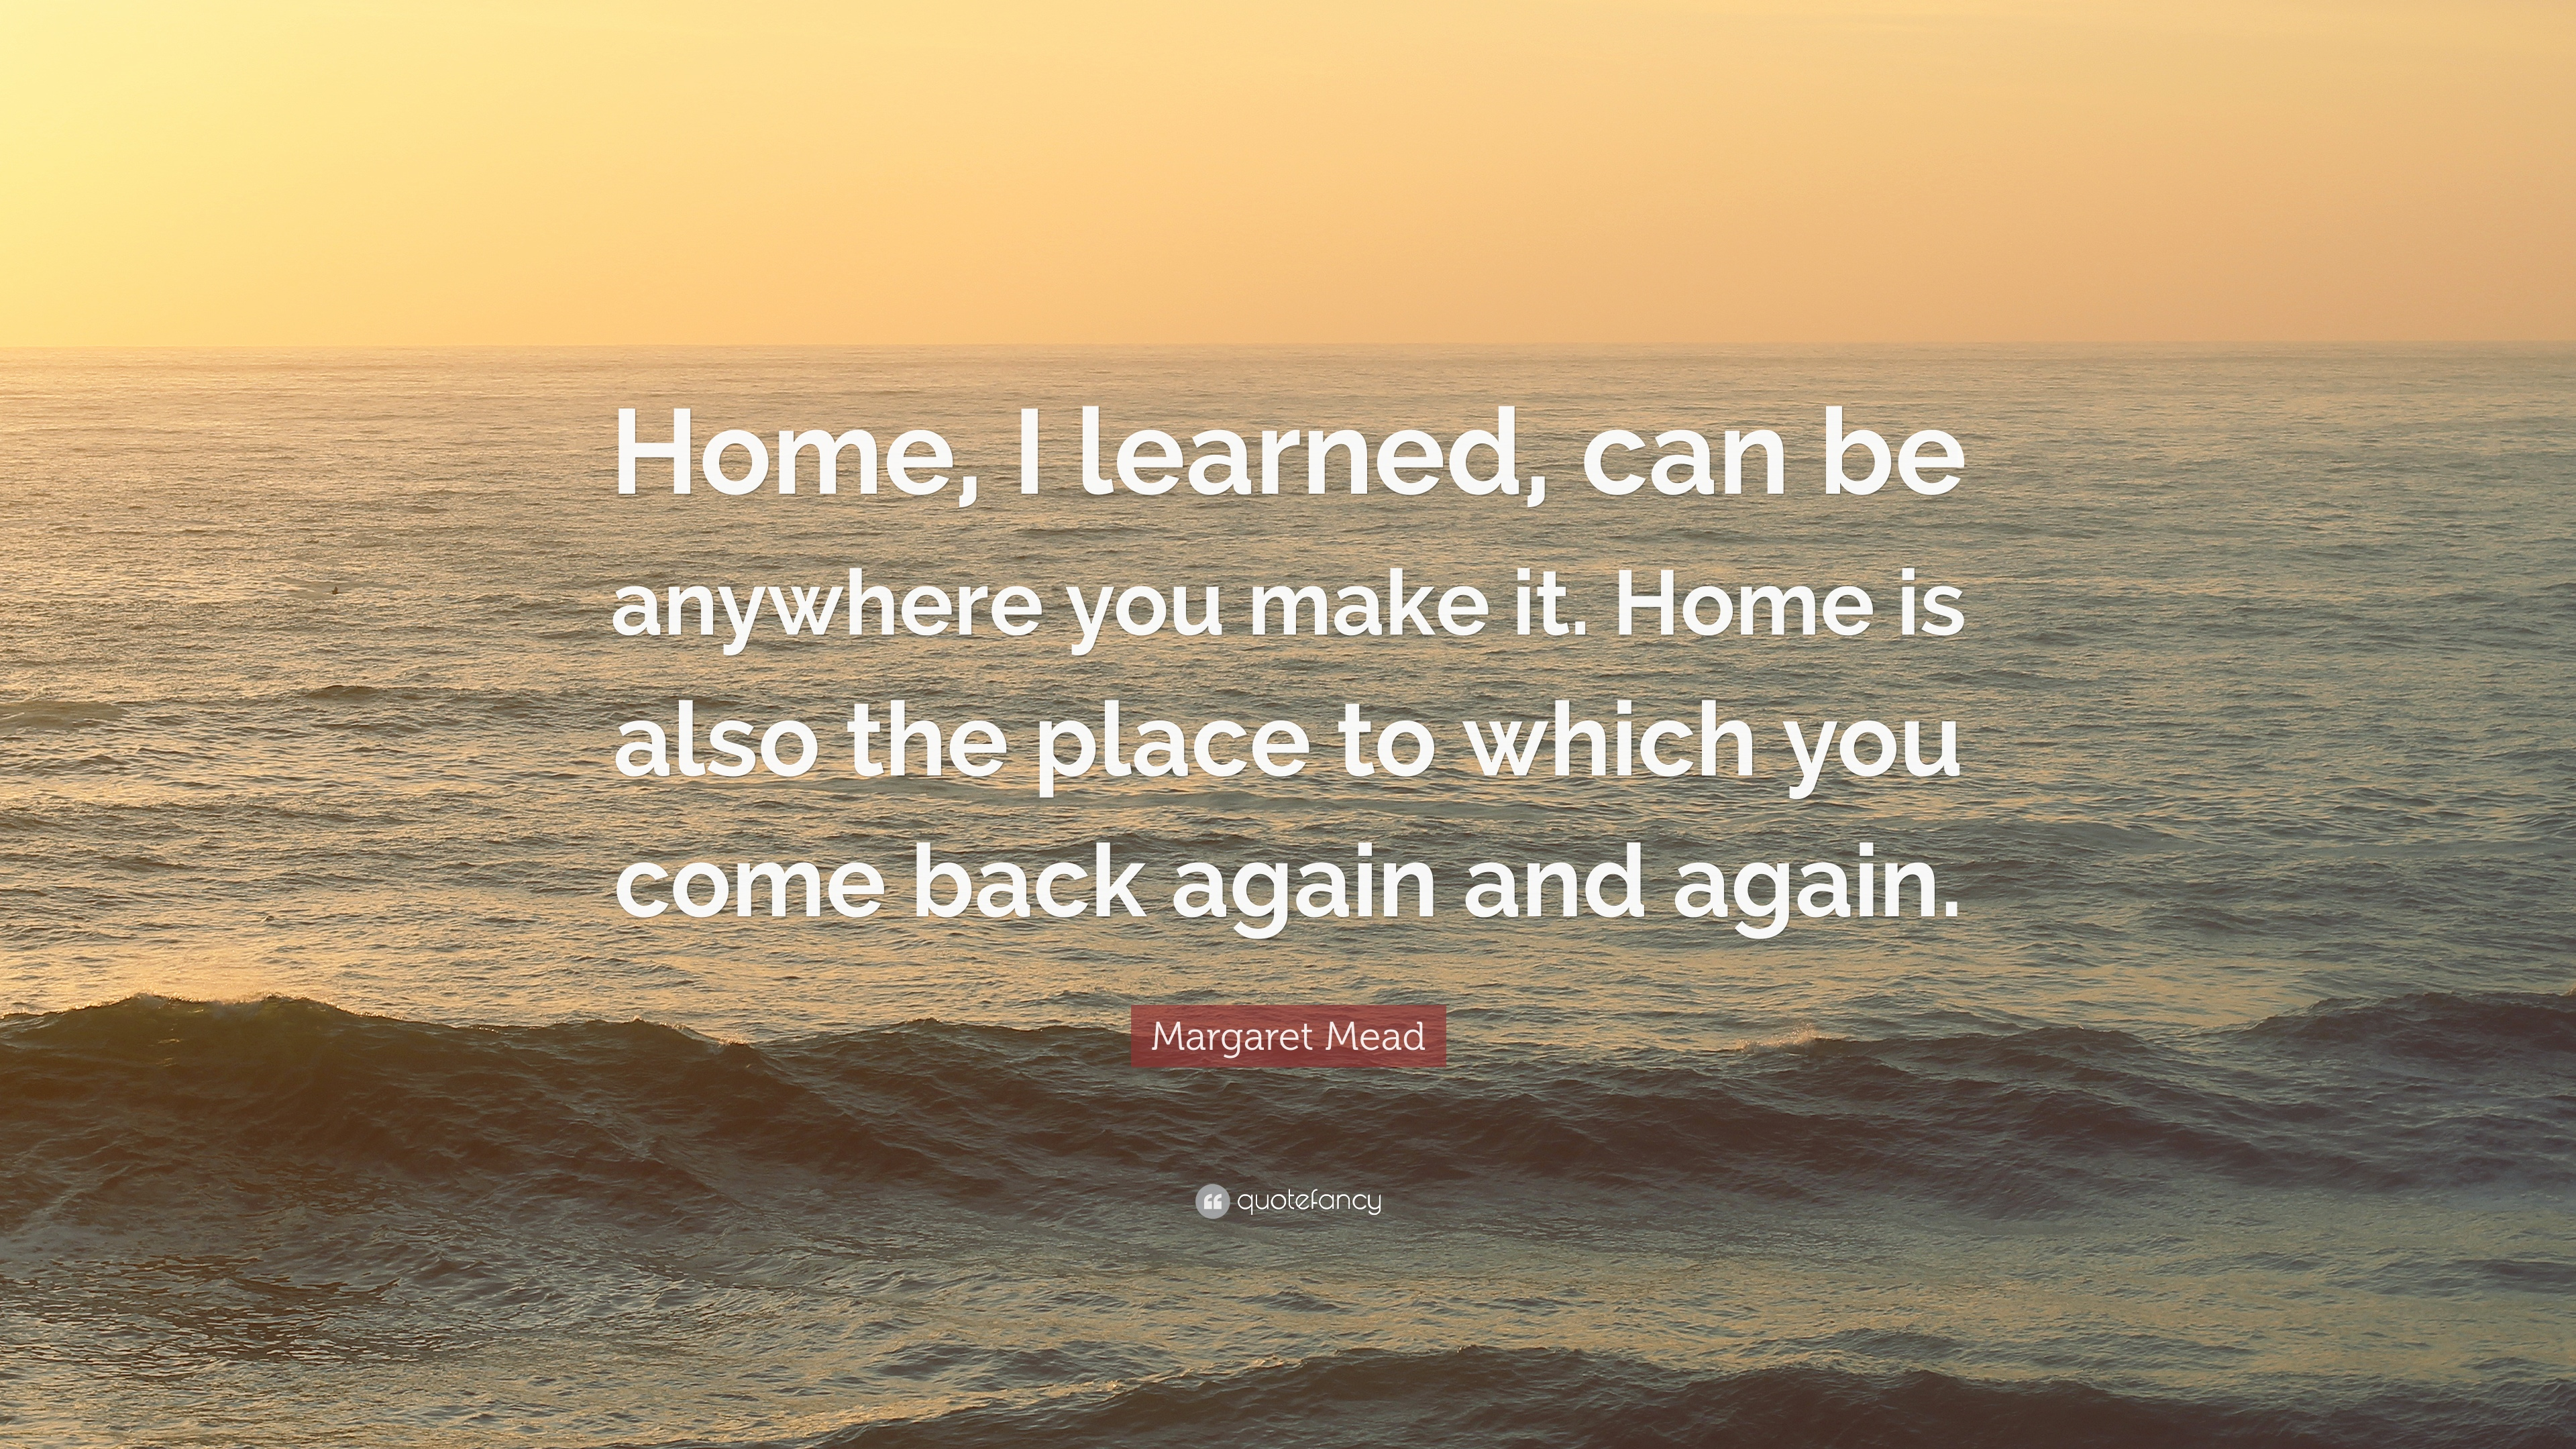 Margaret Mead Quote Home I Learned Can Be Anywhere You Make It Home Is Also The Place To Which You Come Back Again And Again 10 Wallpapers Quotefancy